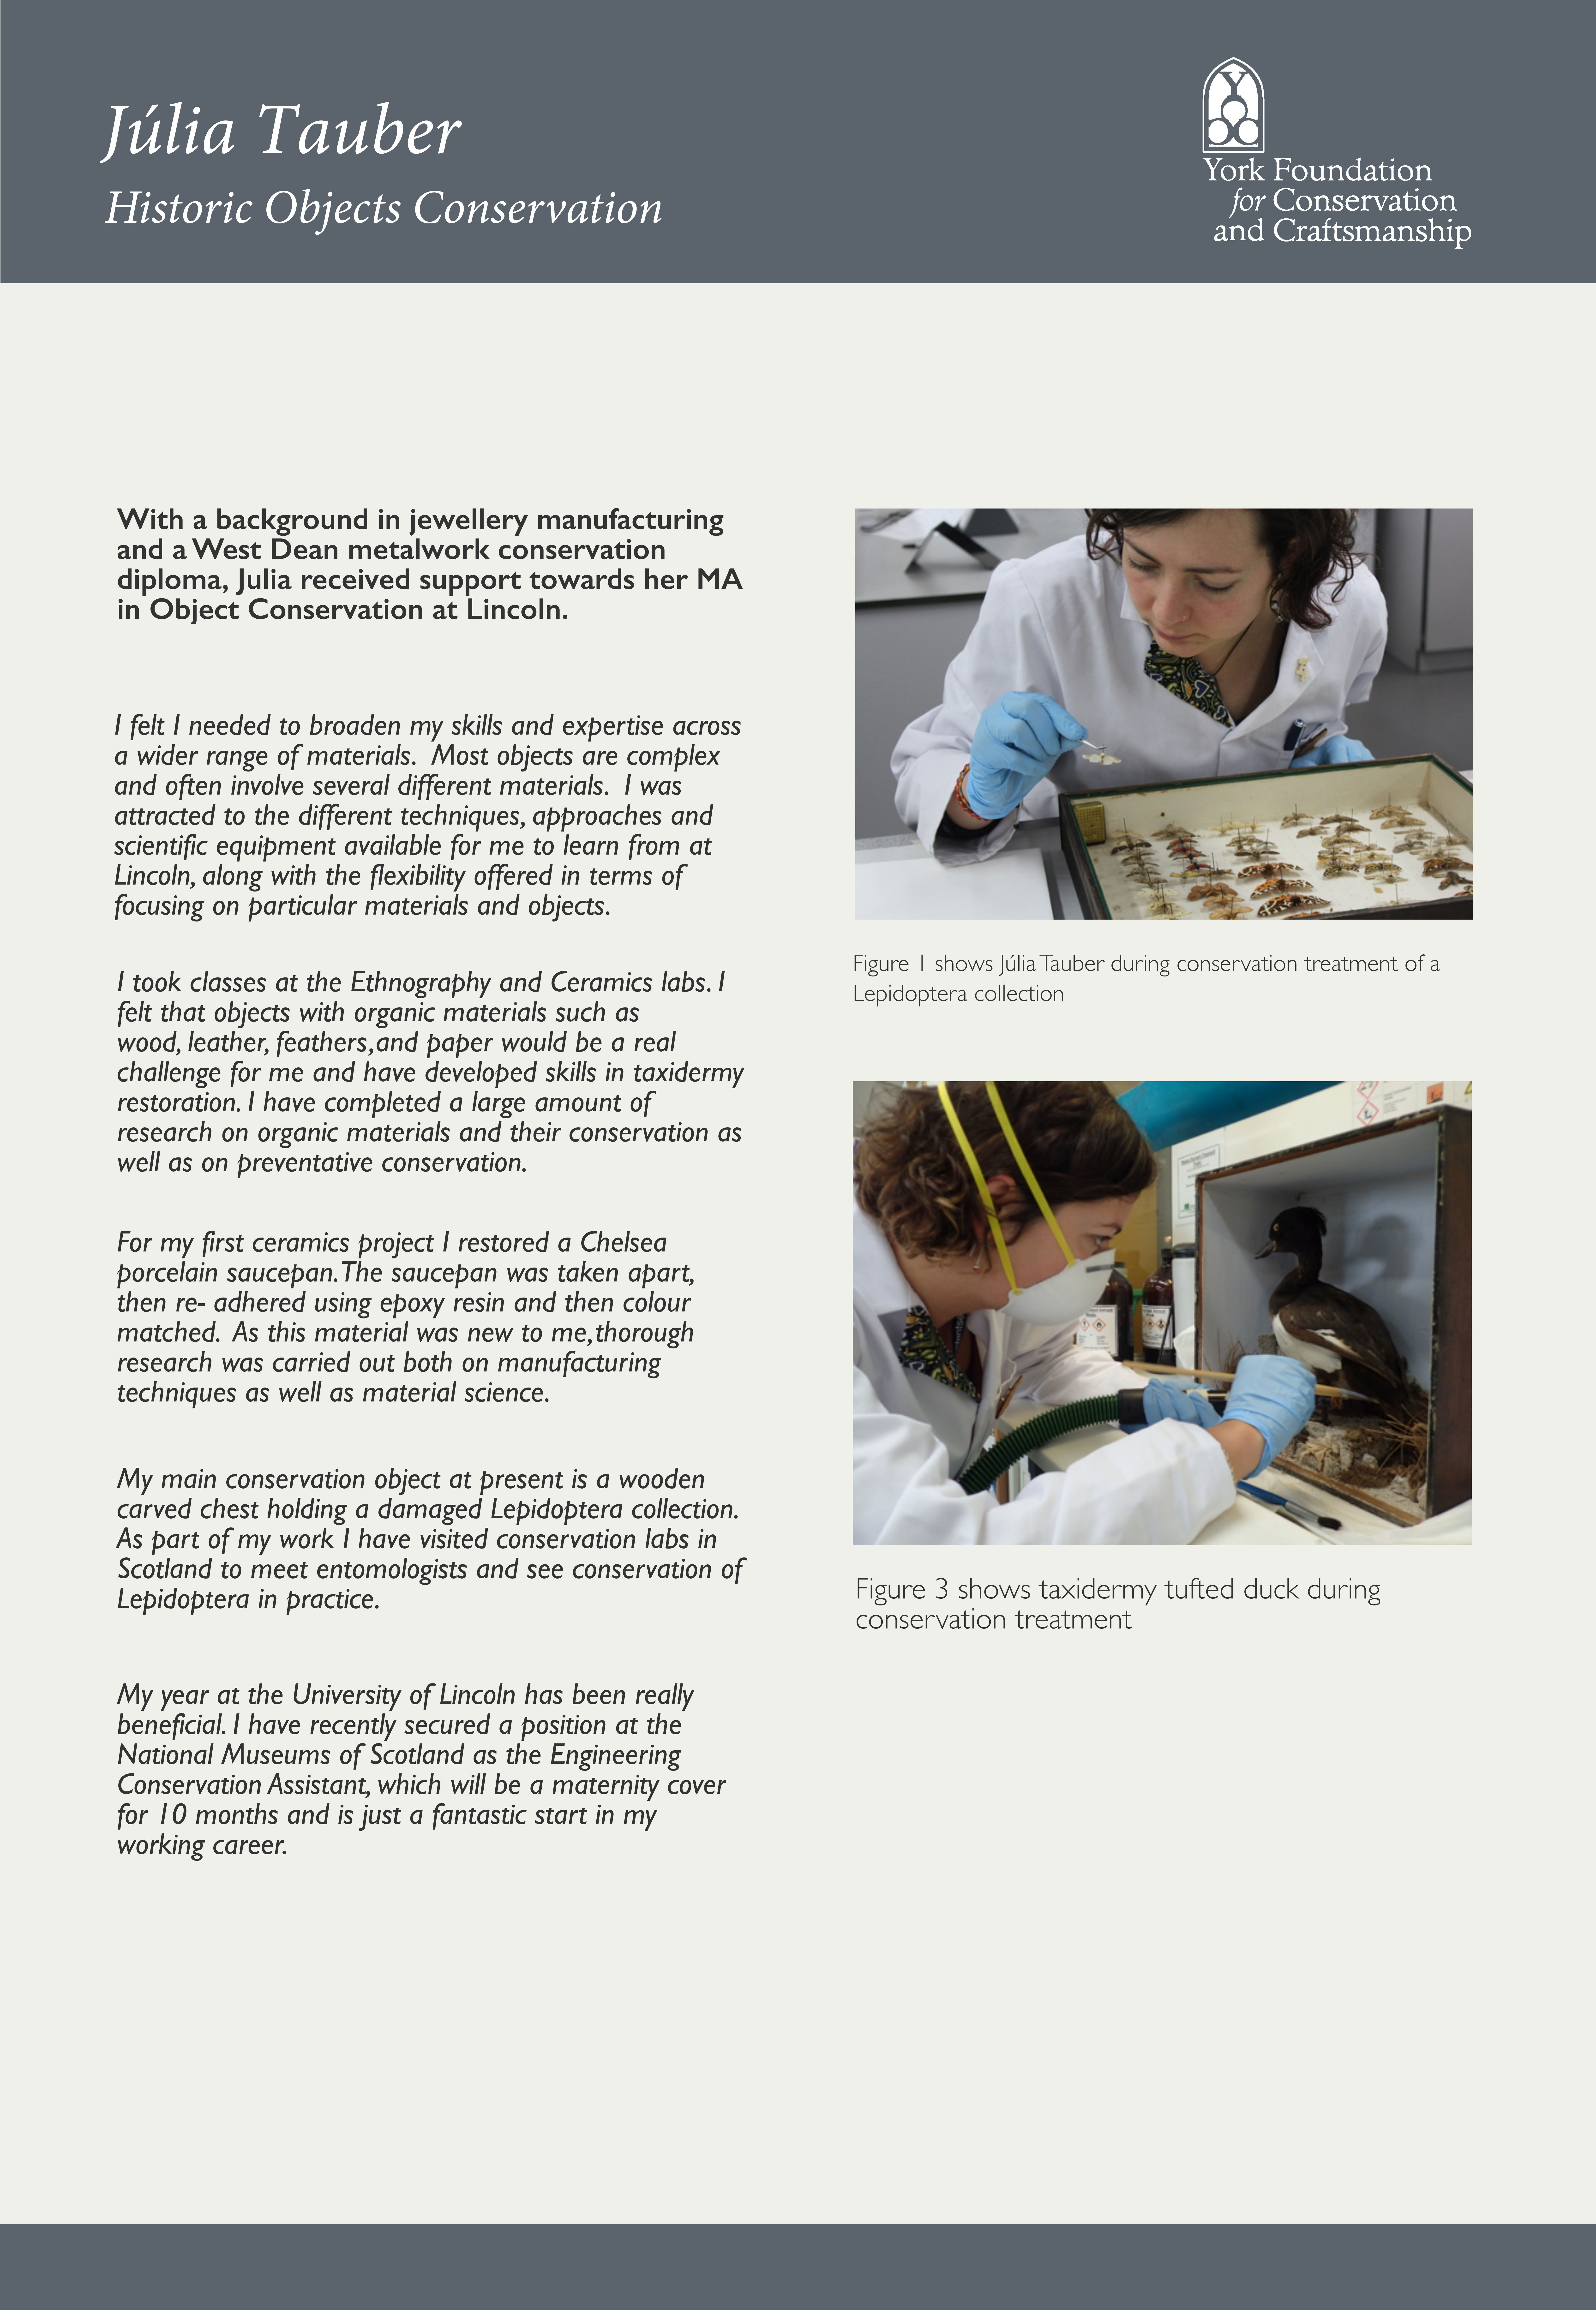 York Consortium for Conservation and Craftsmanship | Supporting